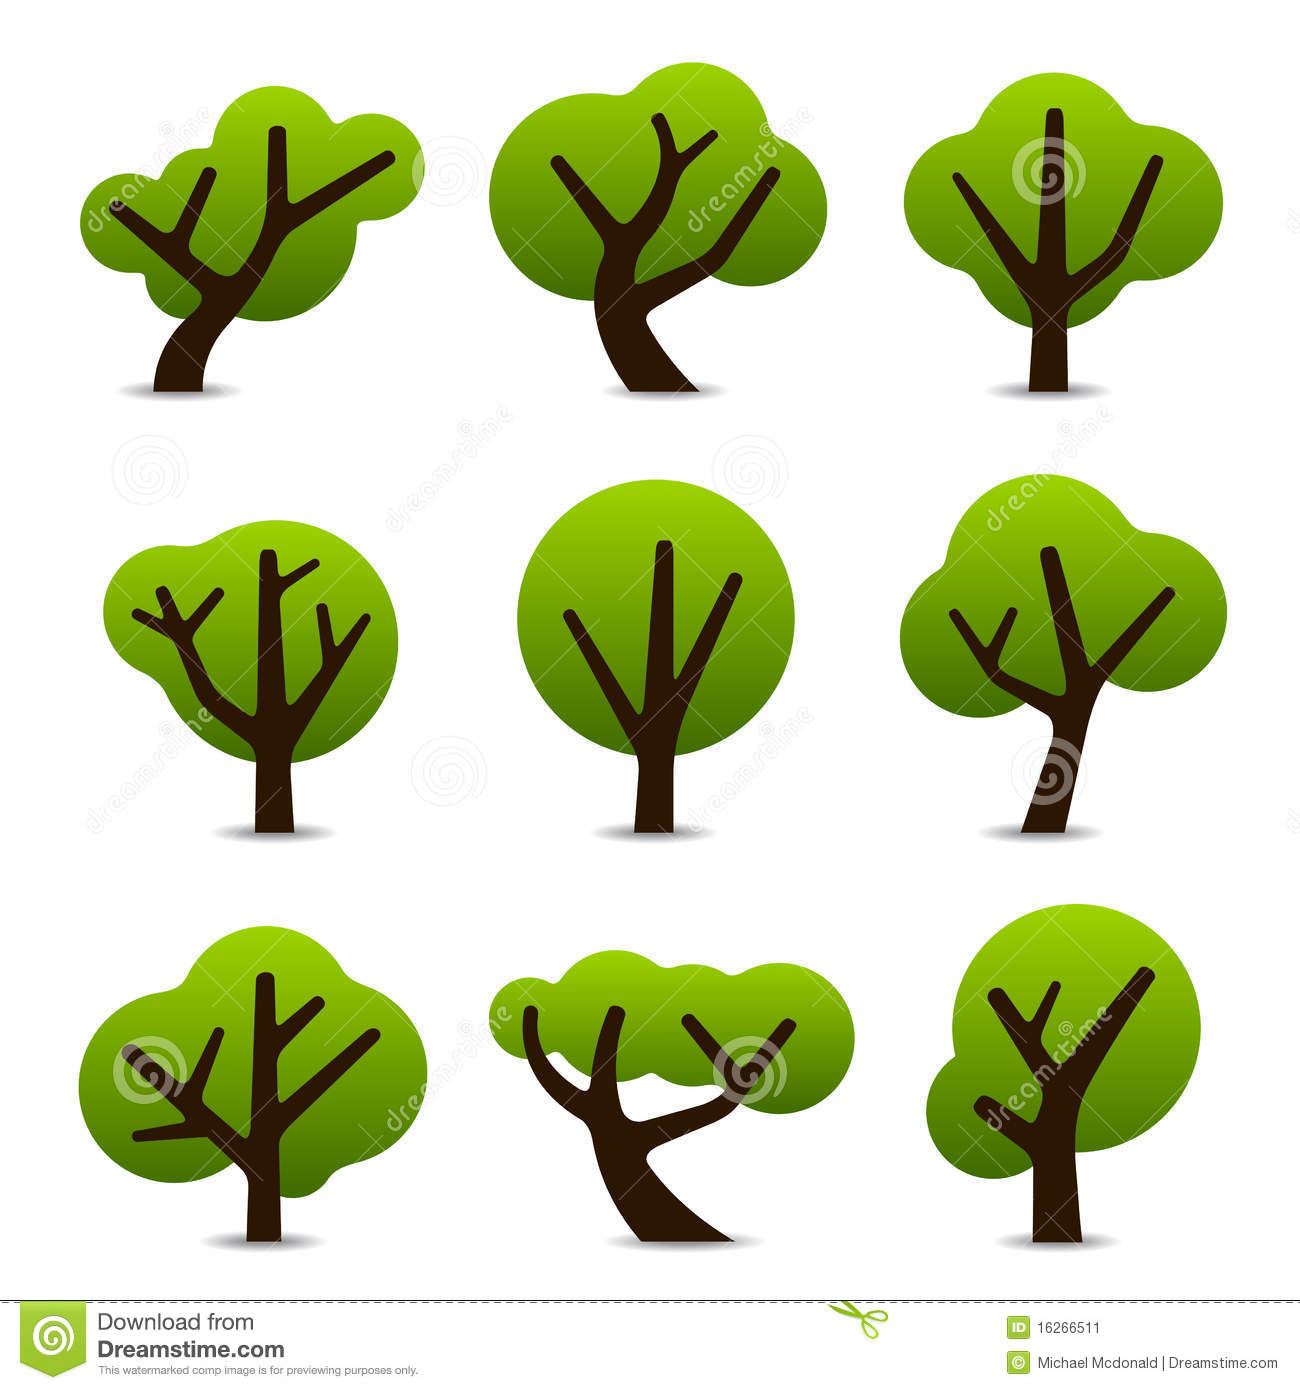 Set of 9 tree icons in simple shapes and designs.